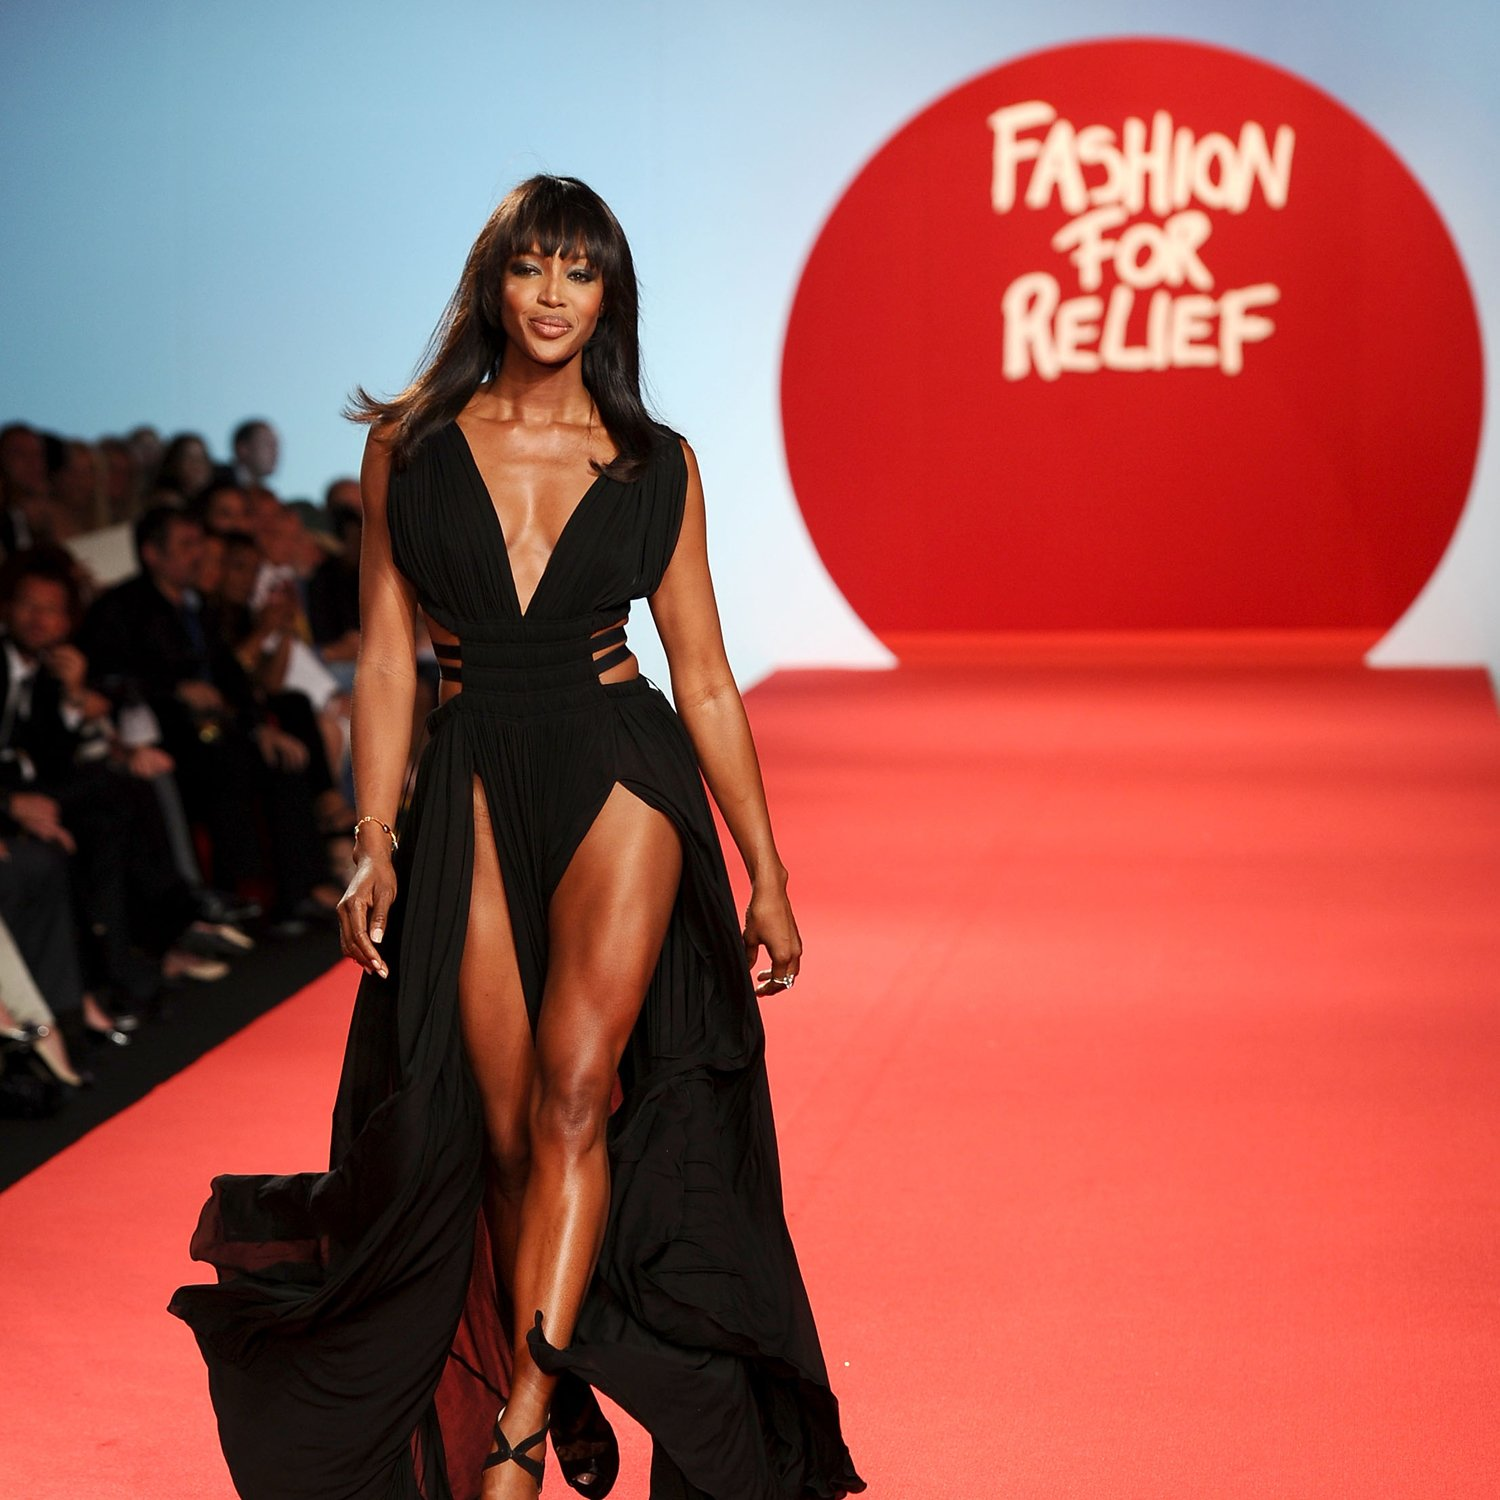 Naomi Campbell tổ chức show thời trang từ thiện Fashion For Relief